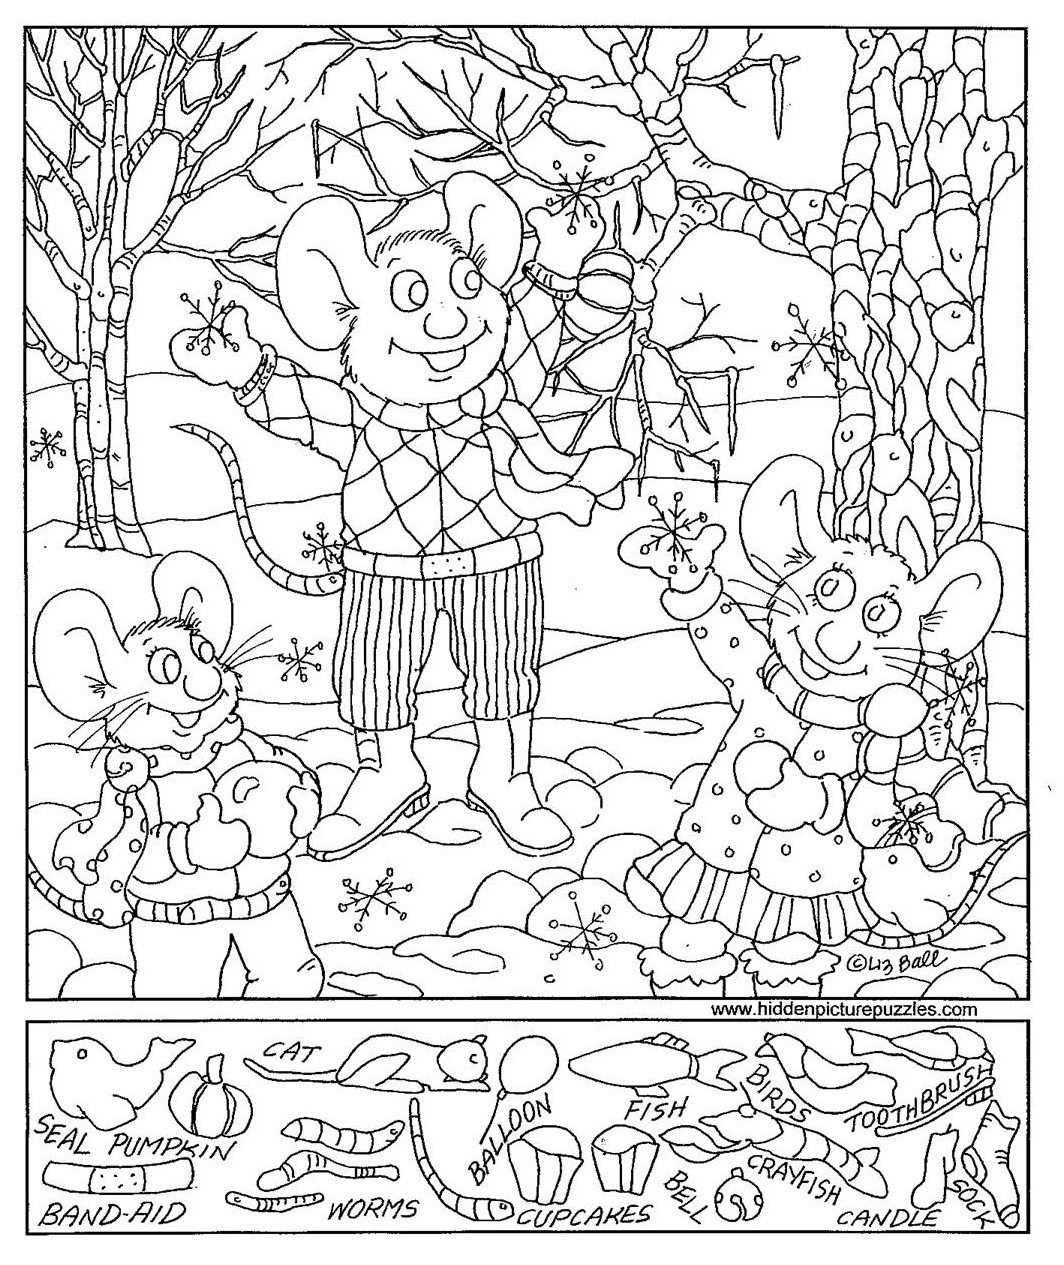 Christmas Hidden Picture Puzzles Printable Christmas Printable Hidden Picture Worksheets